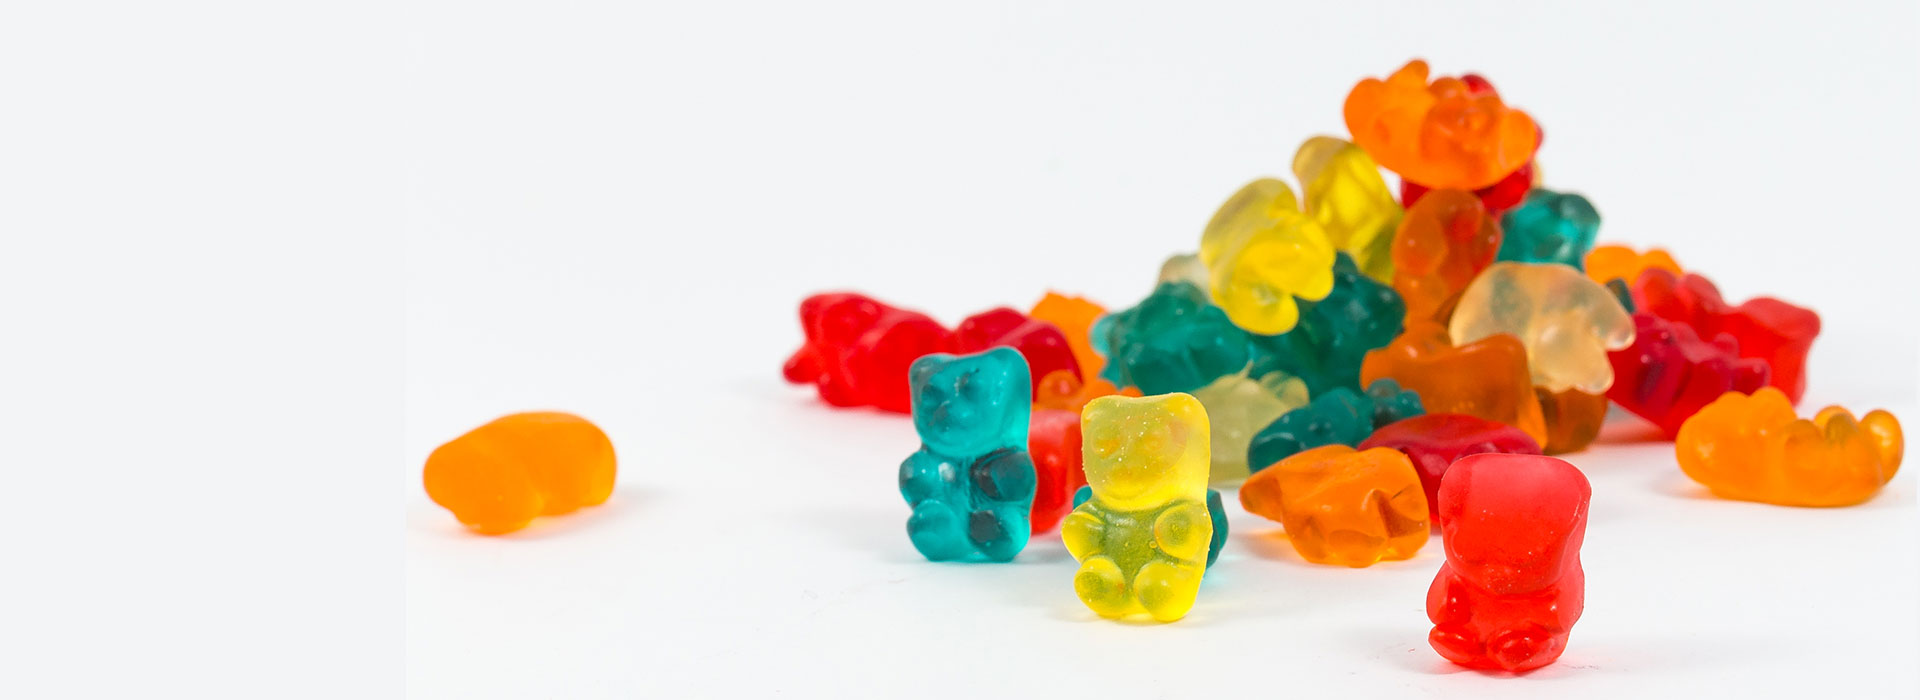 Gummi Bears For Sale